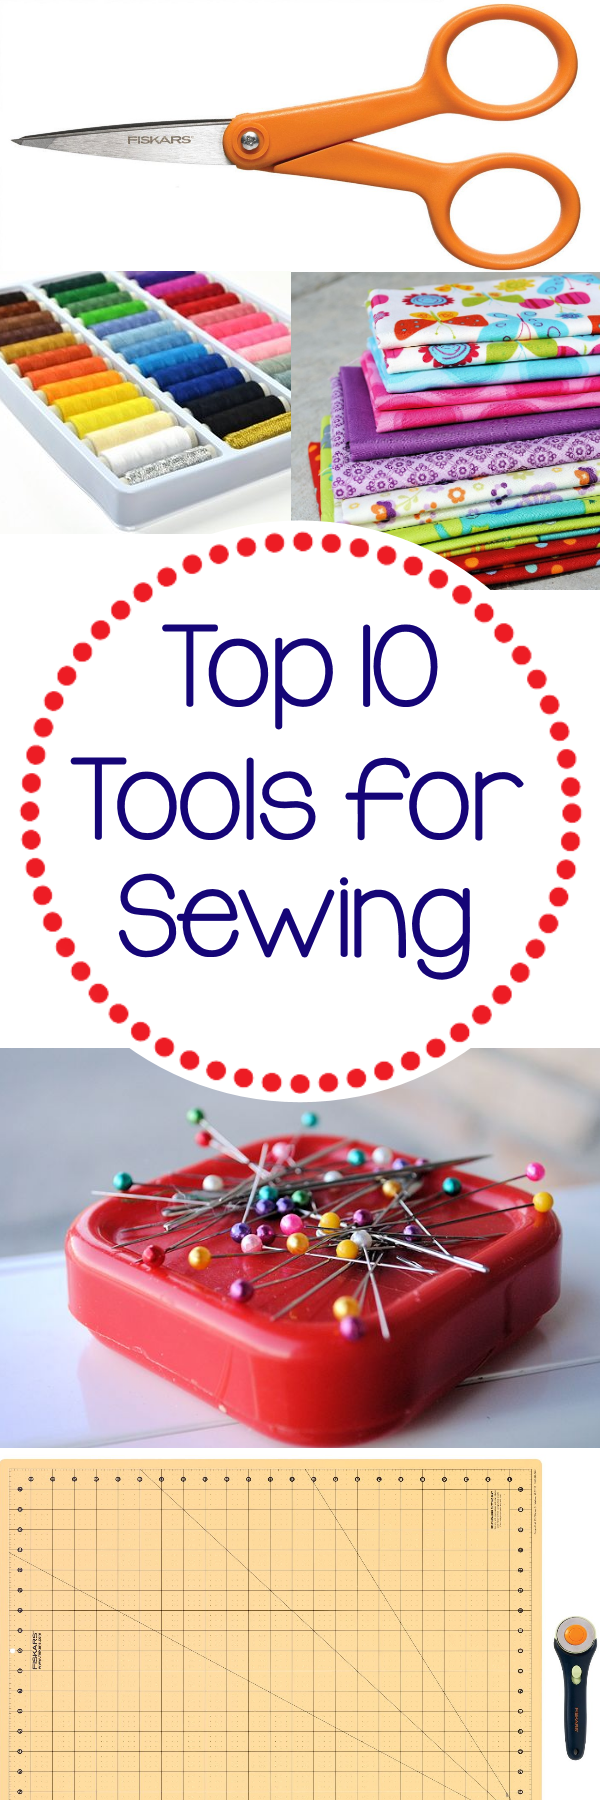 Top 10 Things You Need if you Want to Sew